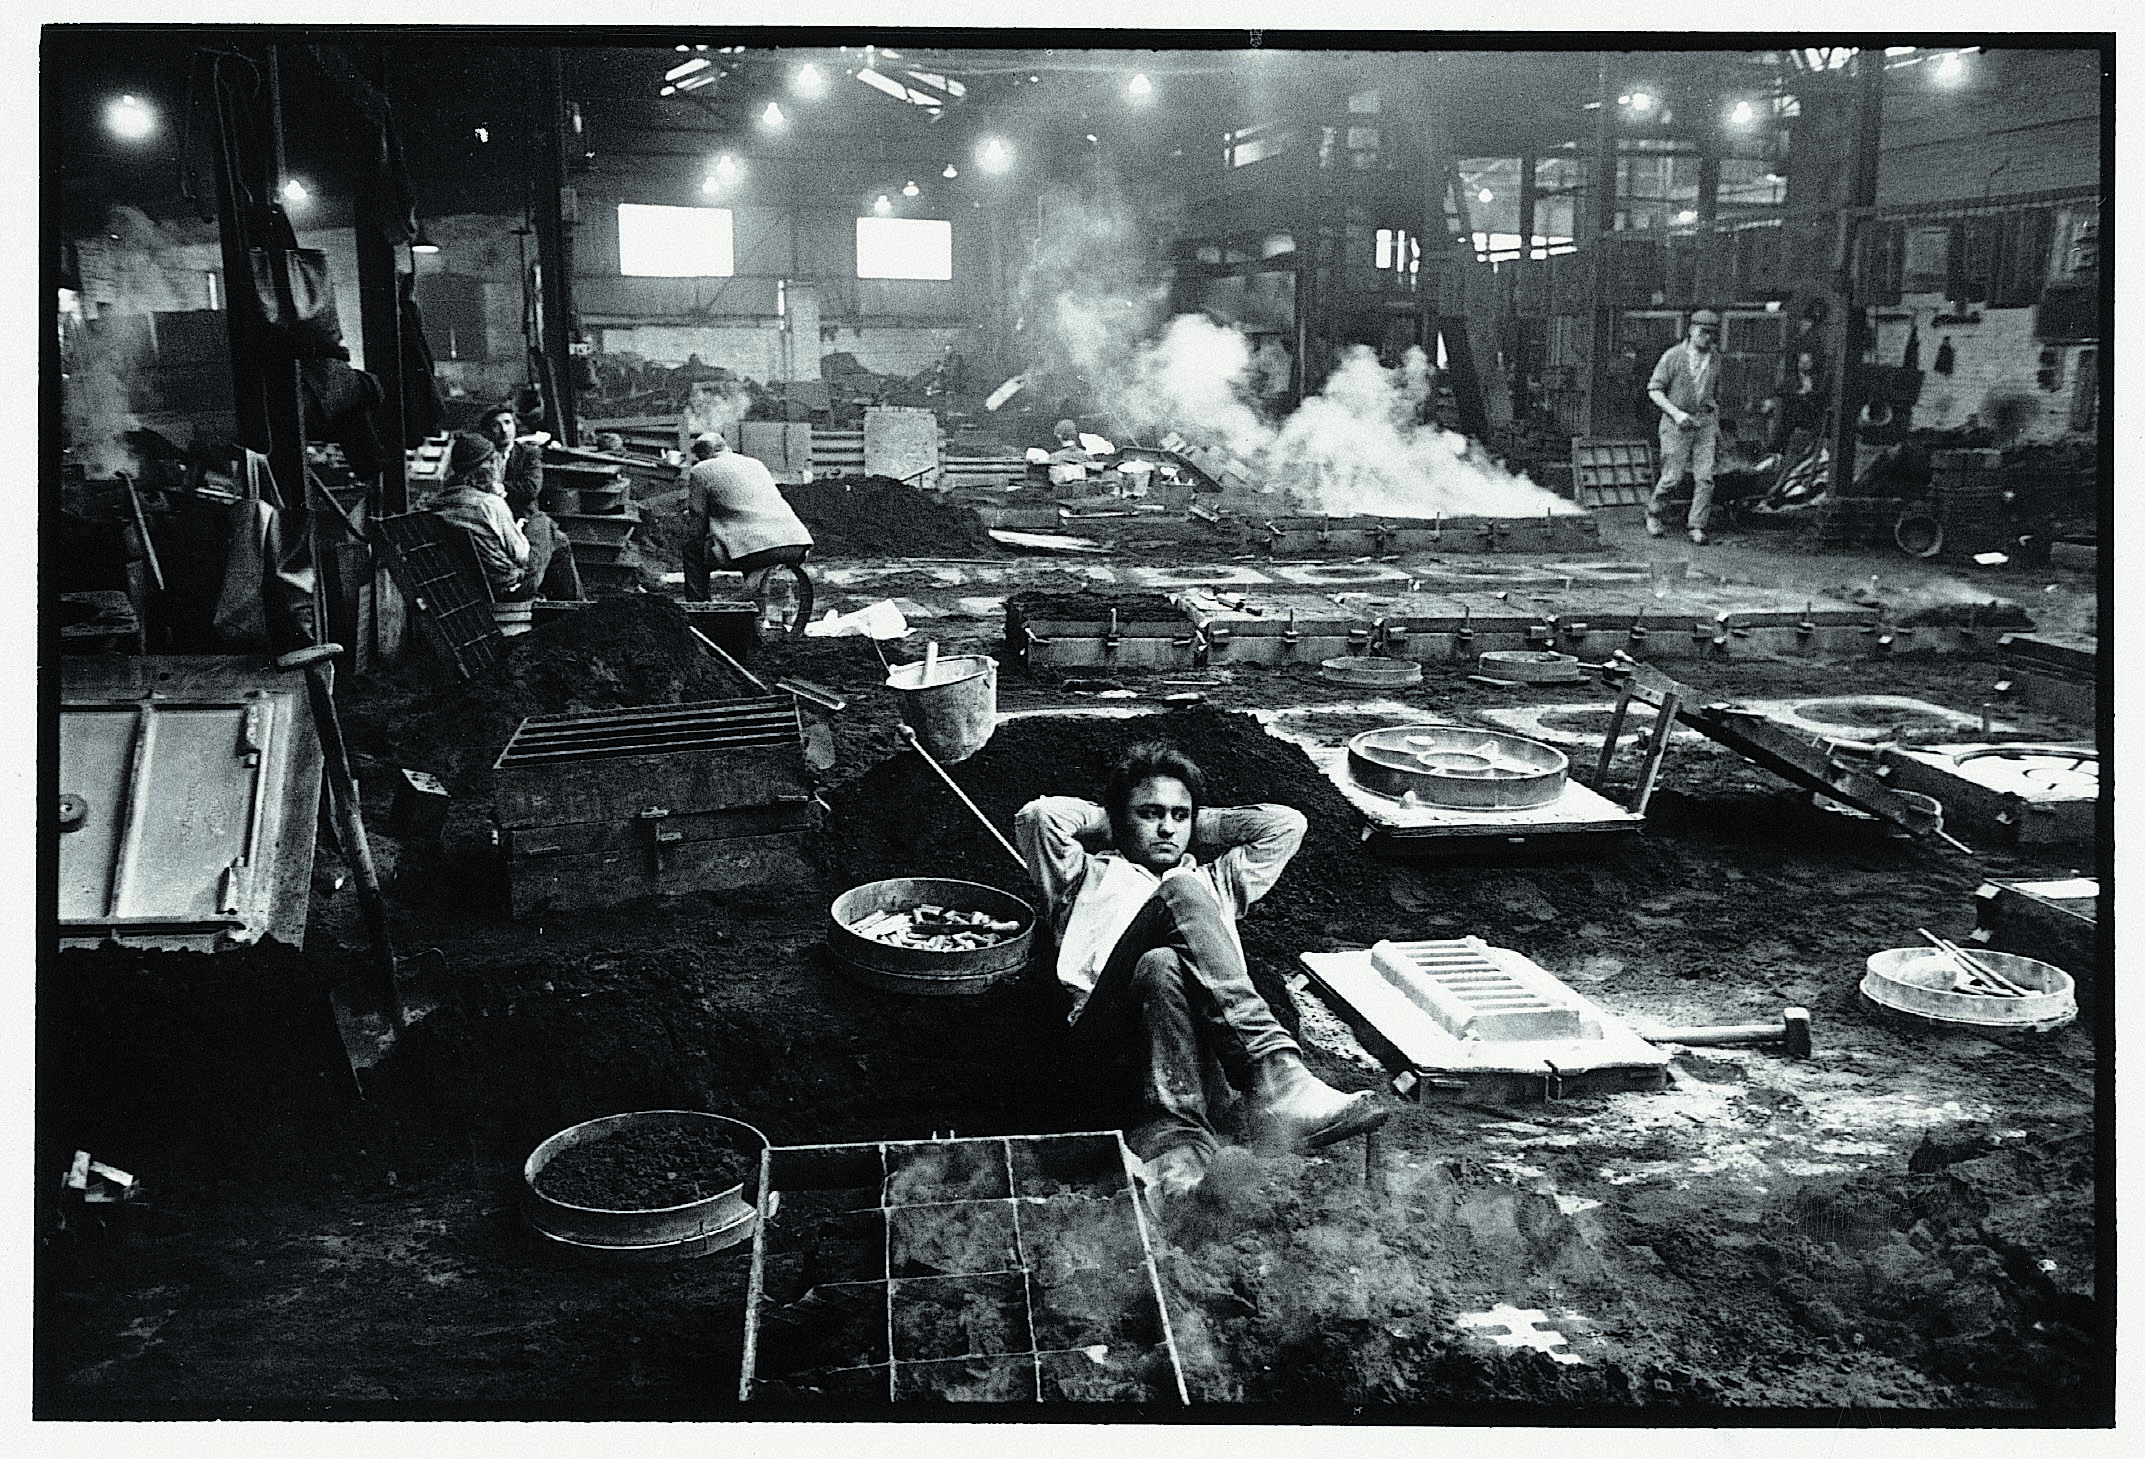 Foundry worker, Cradley Heath. Library of Birmingham: MS 2294/1/1/9/1 Image copyright Paul Hill, 1972